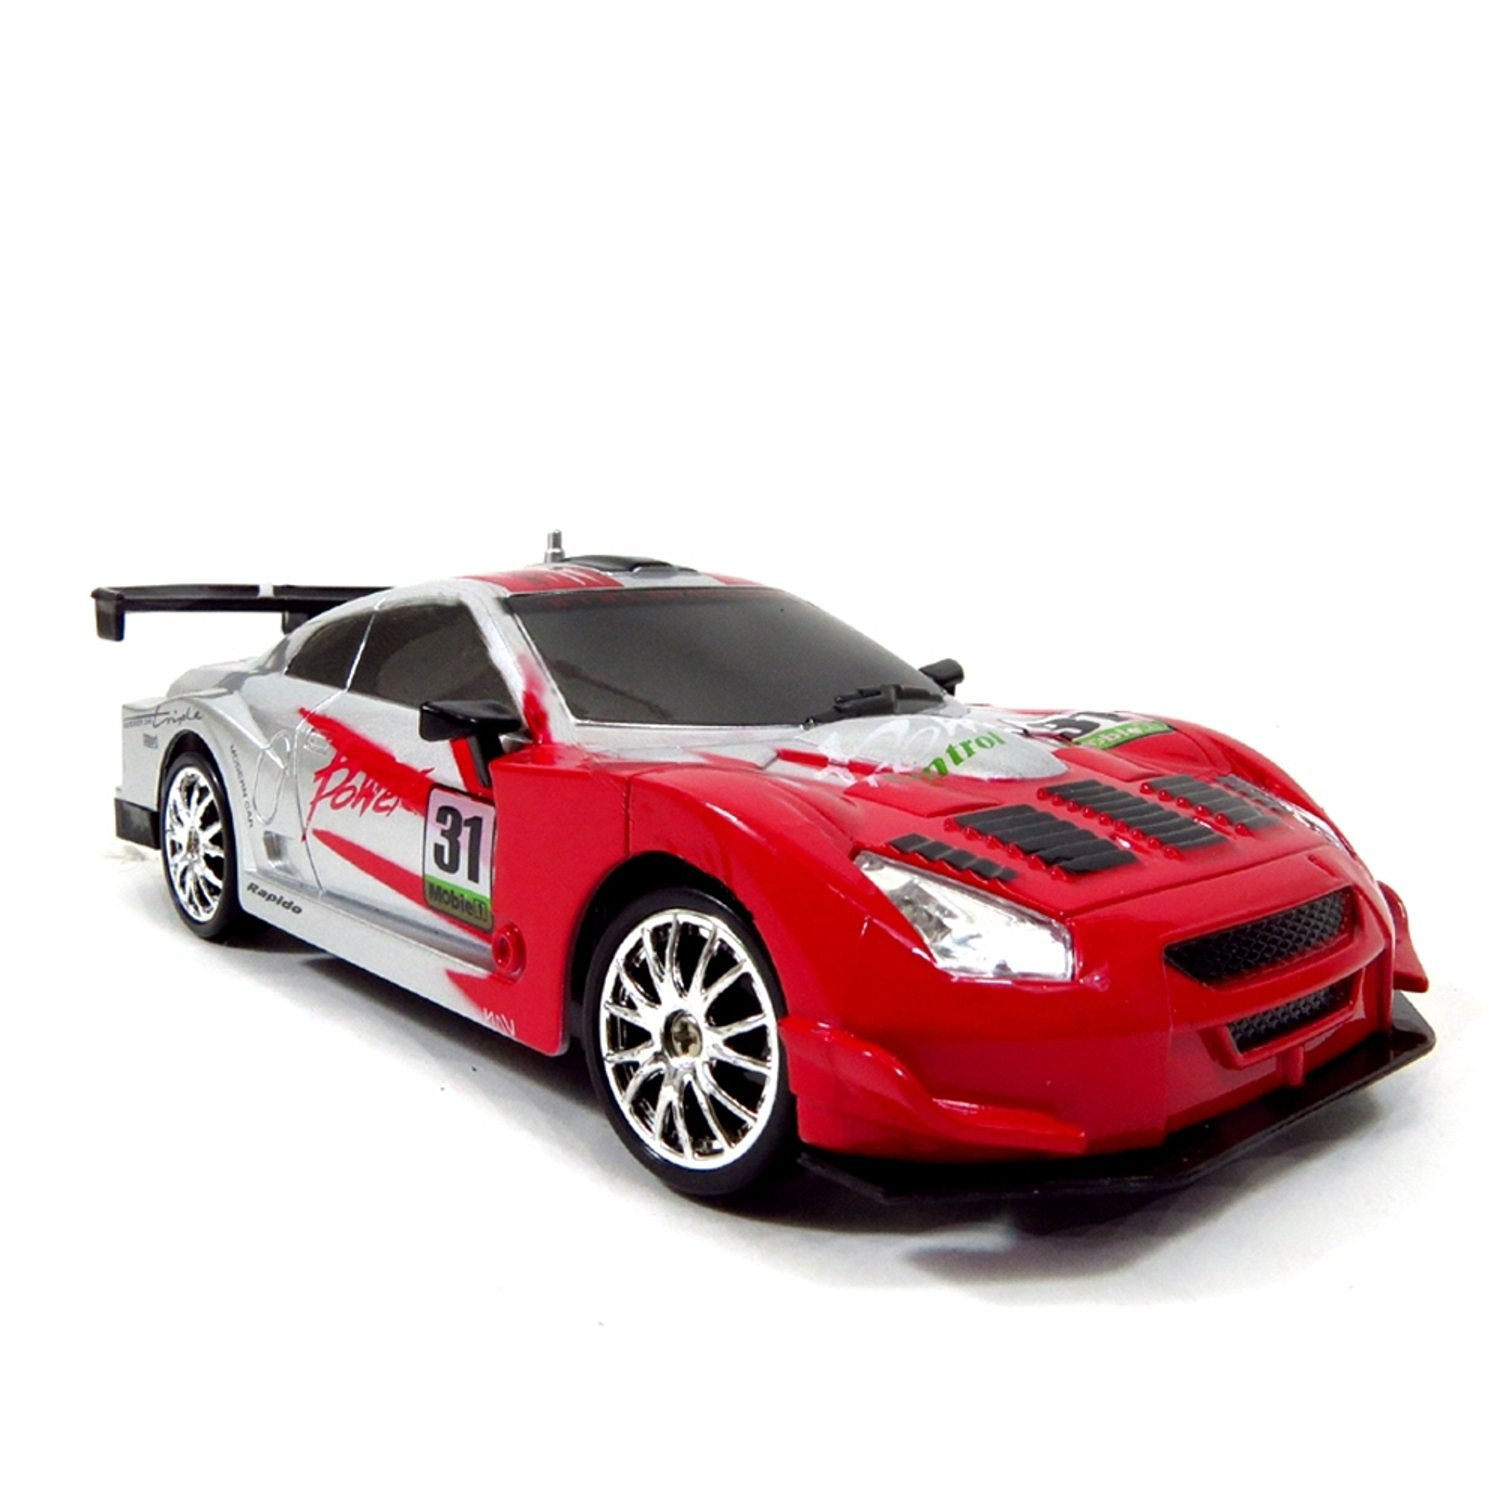 Cheap Fast Car Spares Find Fast Car Spares Deals On Line At - Fast car deals